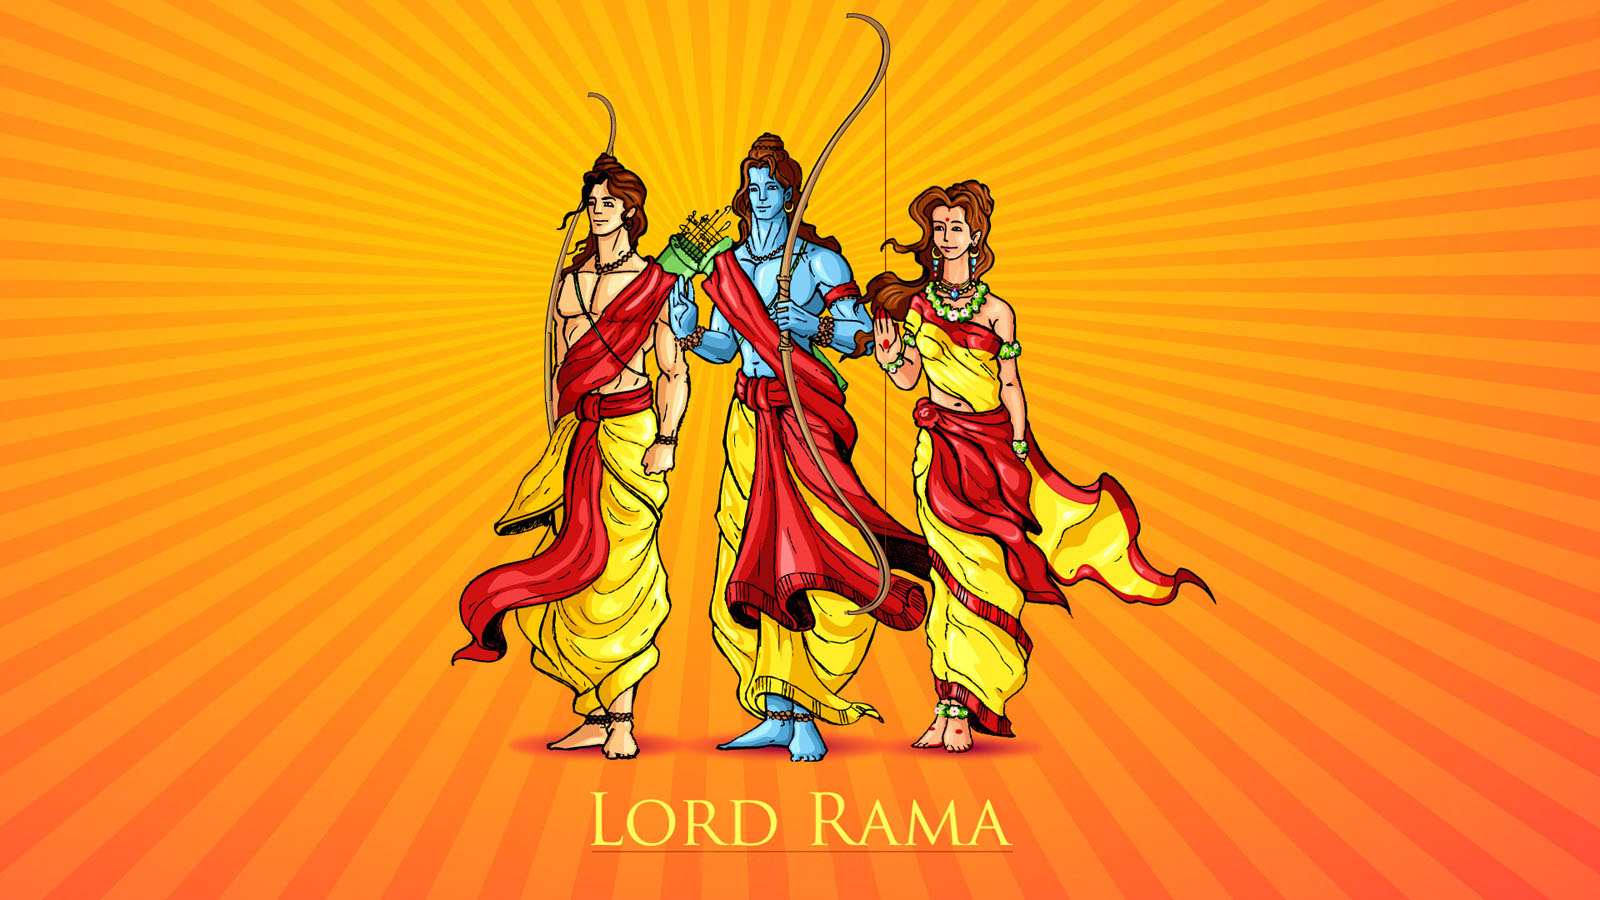 rama hindu lord cartoon wallpaper